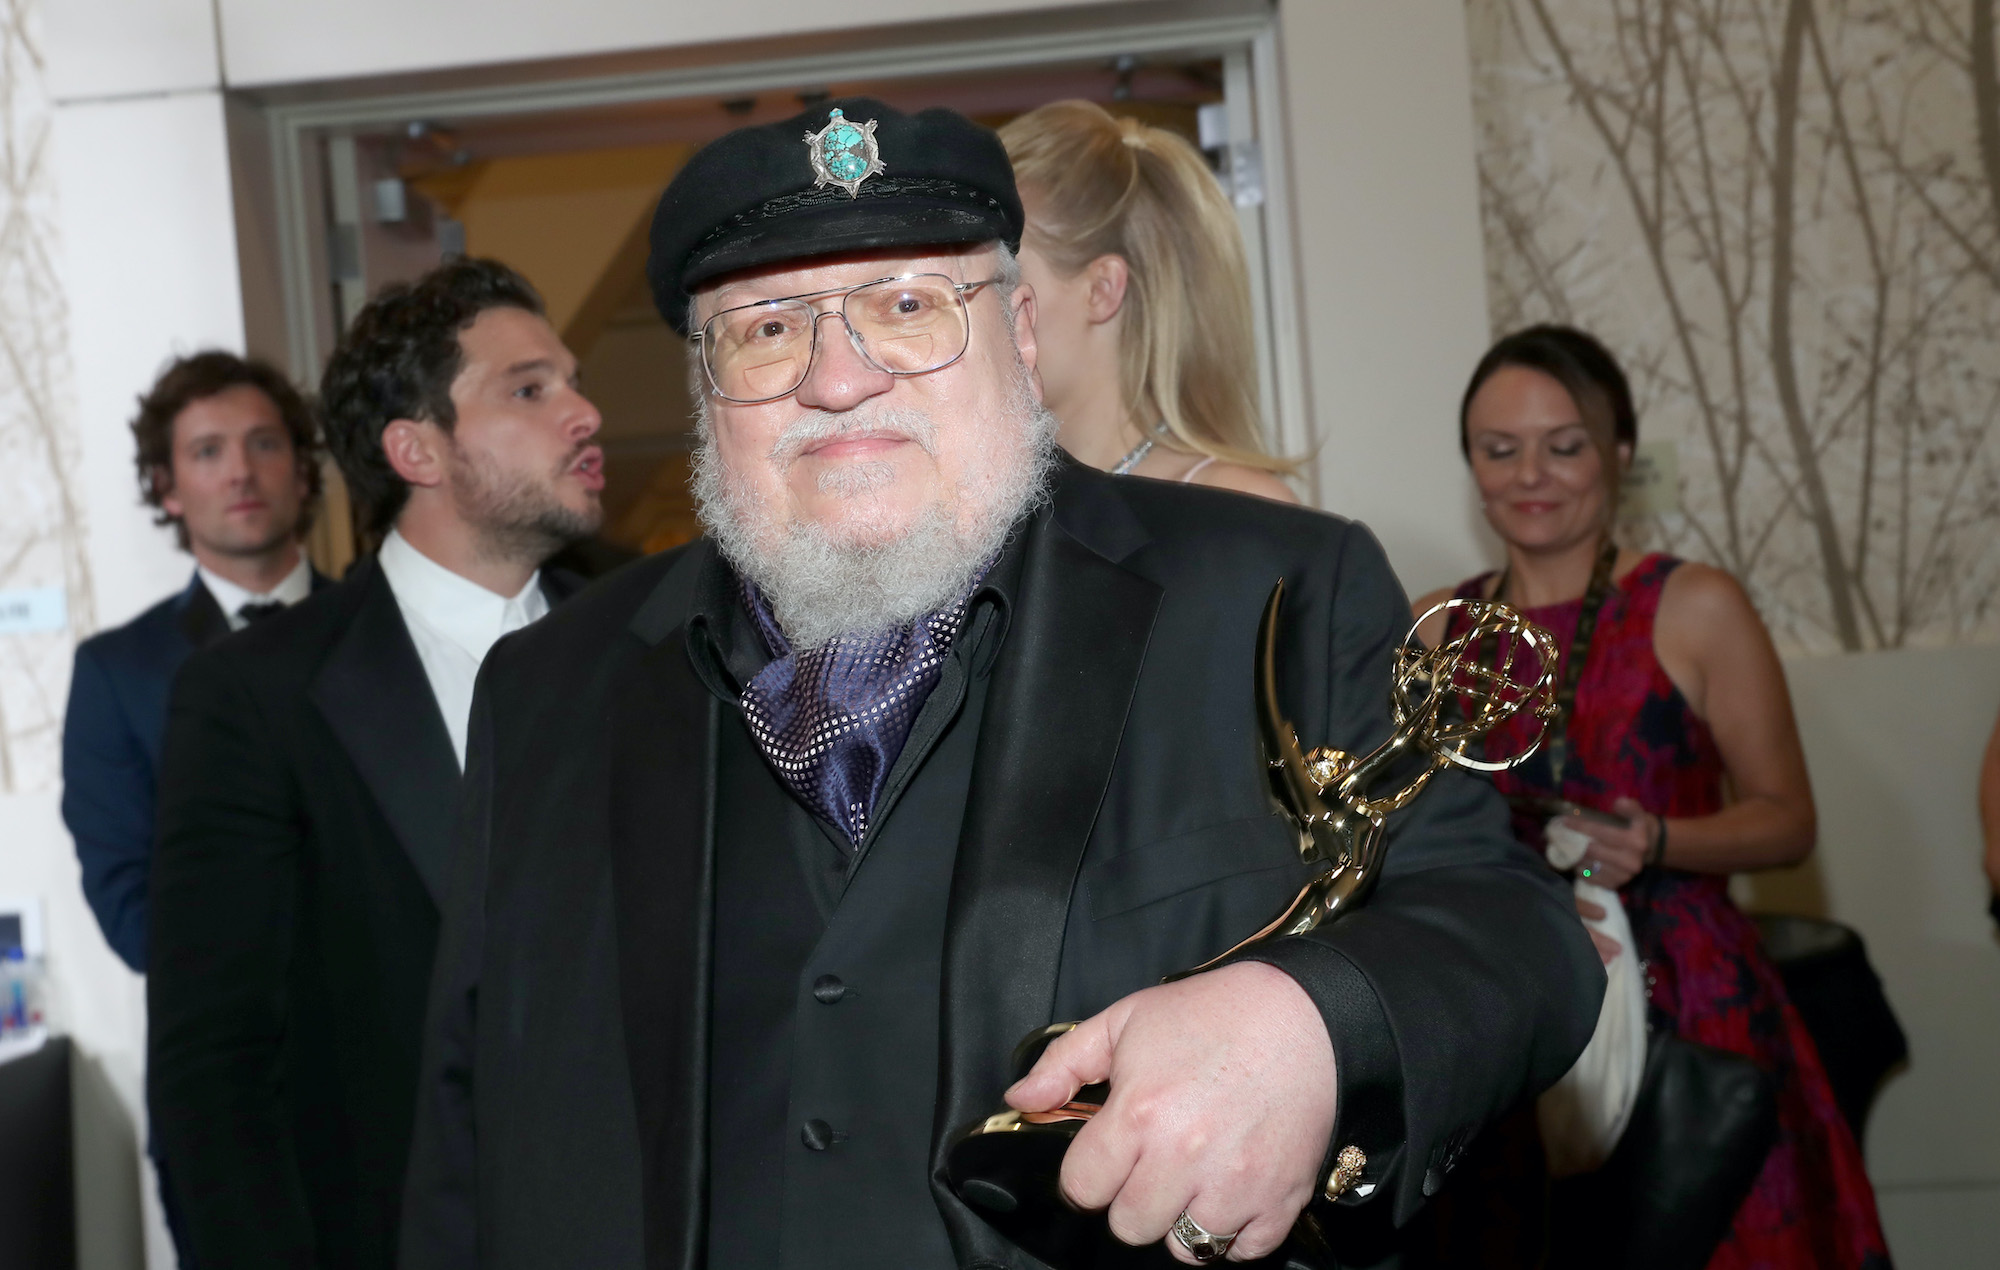 George R.R. Martin's 'Sandkings' is being made into a Netflix film